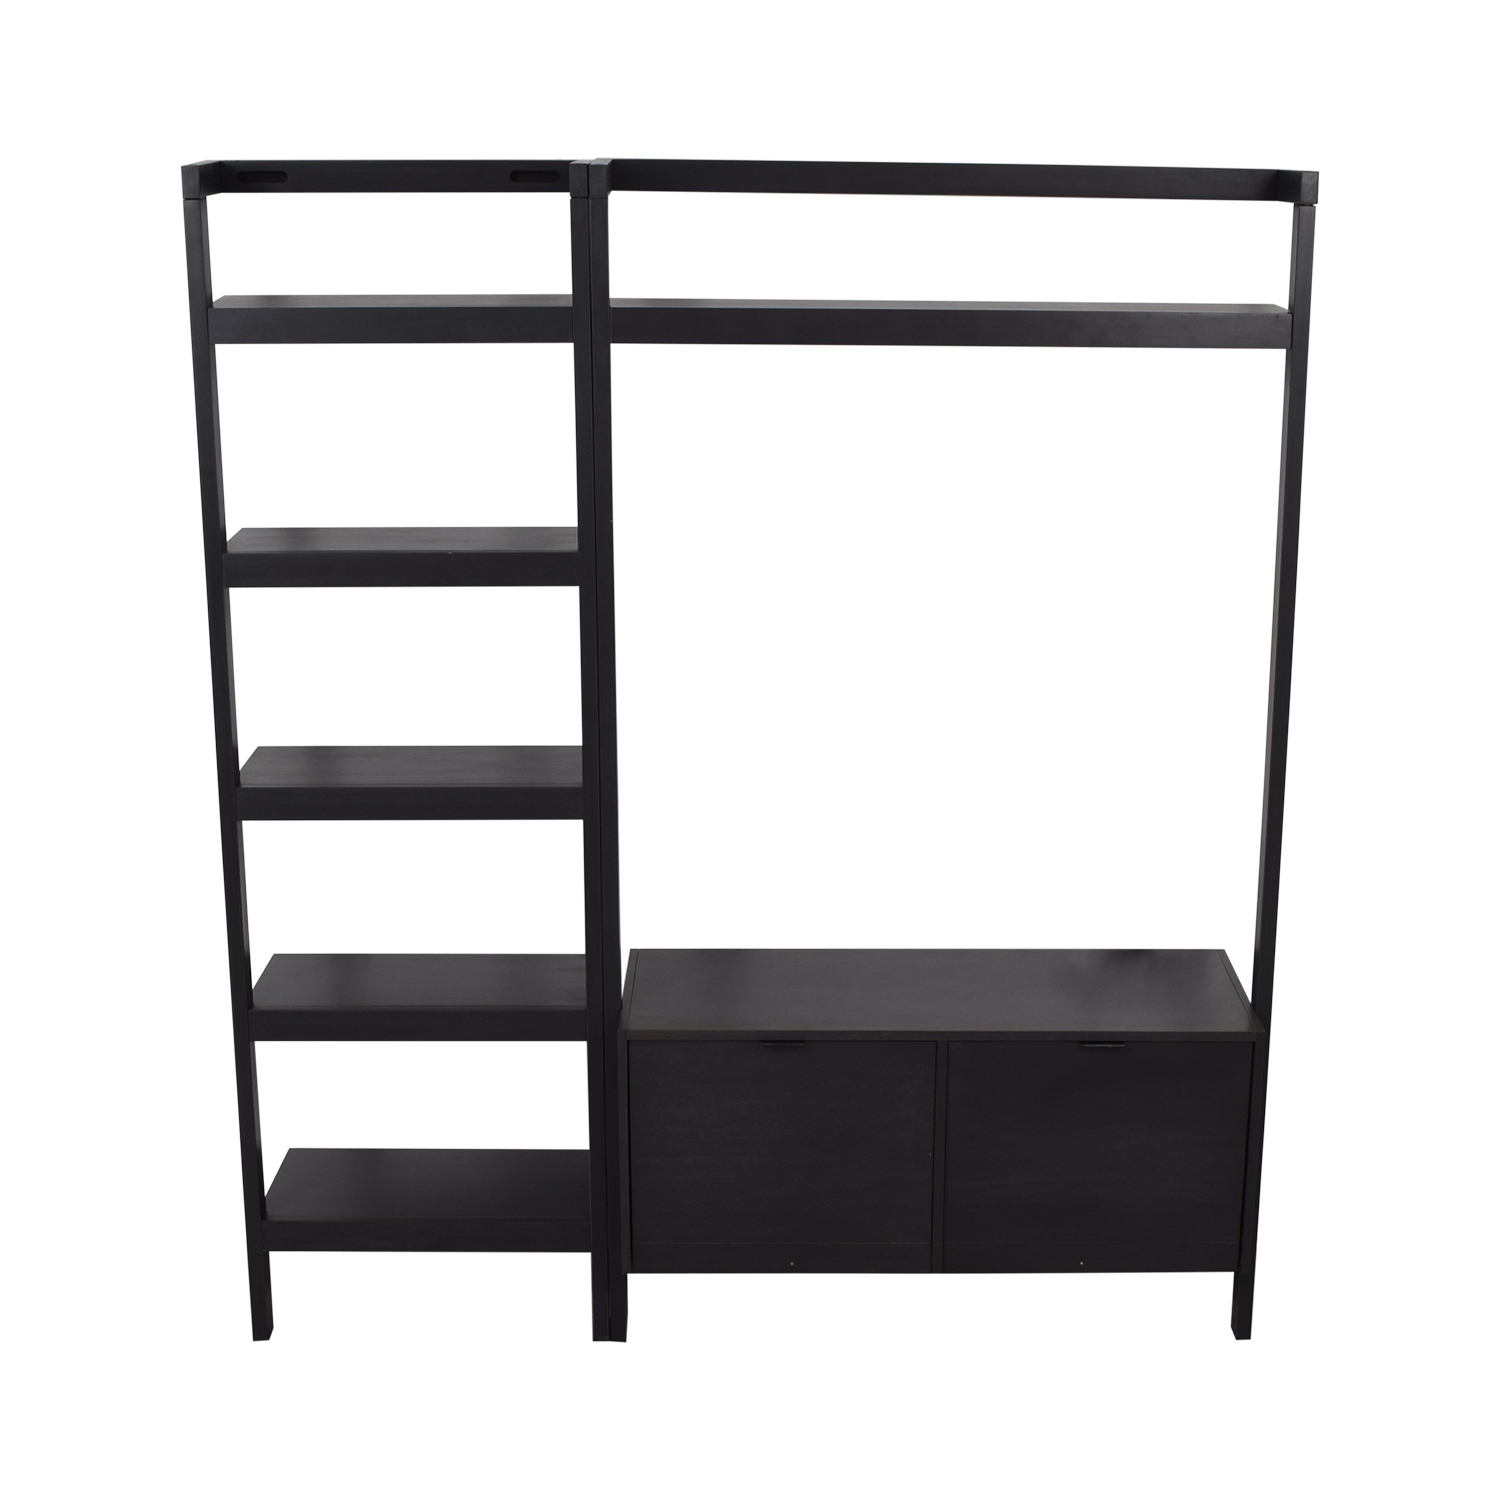 buy Crate & Barrel Sawyer Media Unit and Bookshelf Crate & Barrel Storage